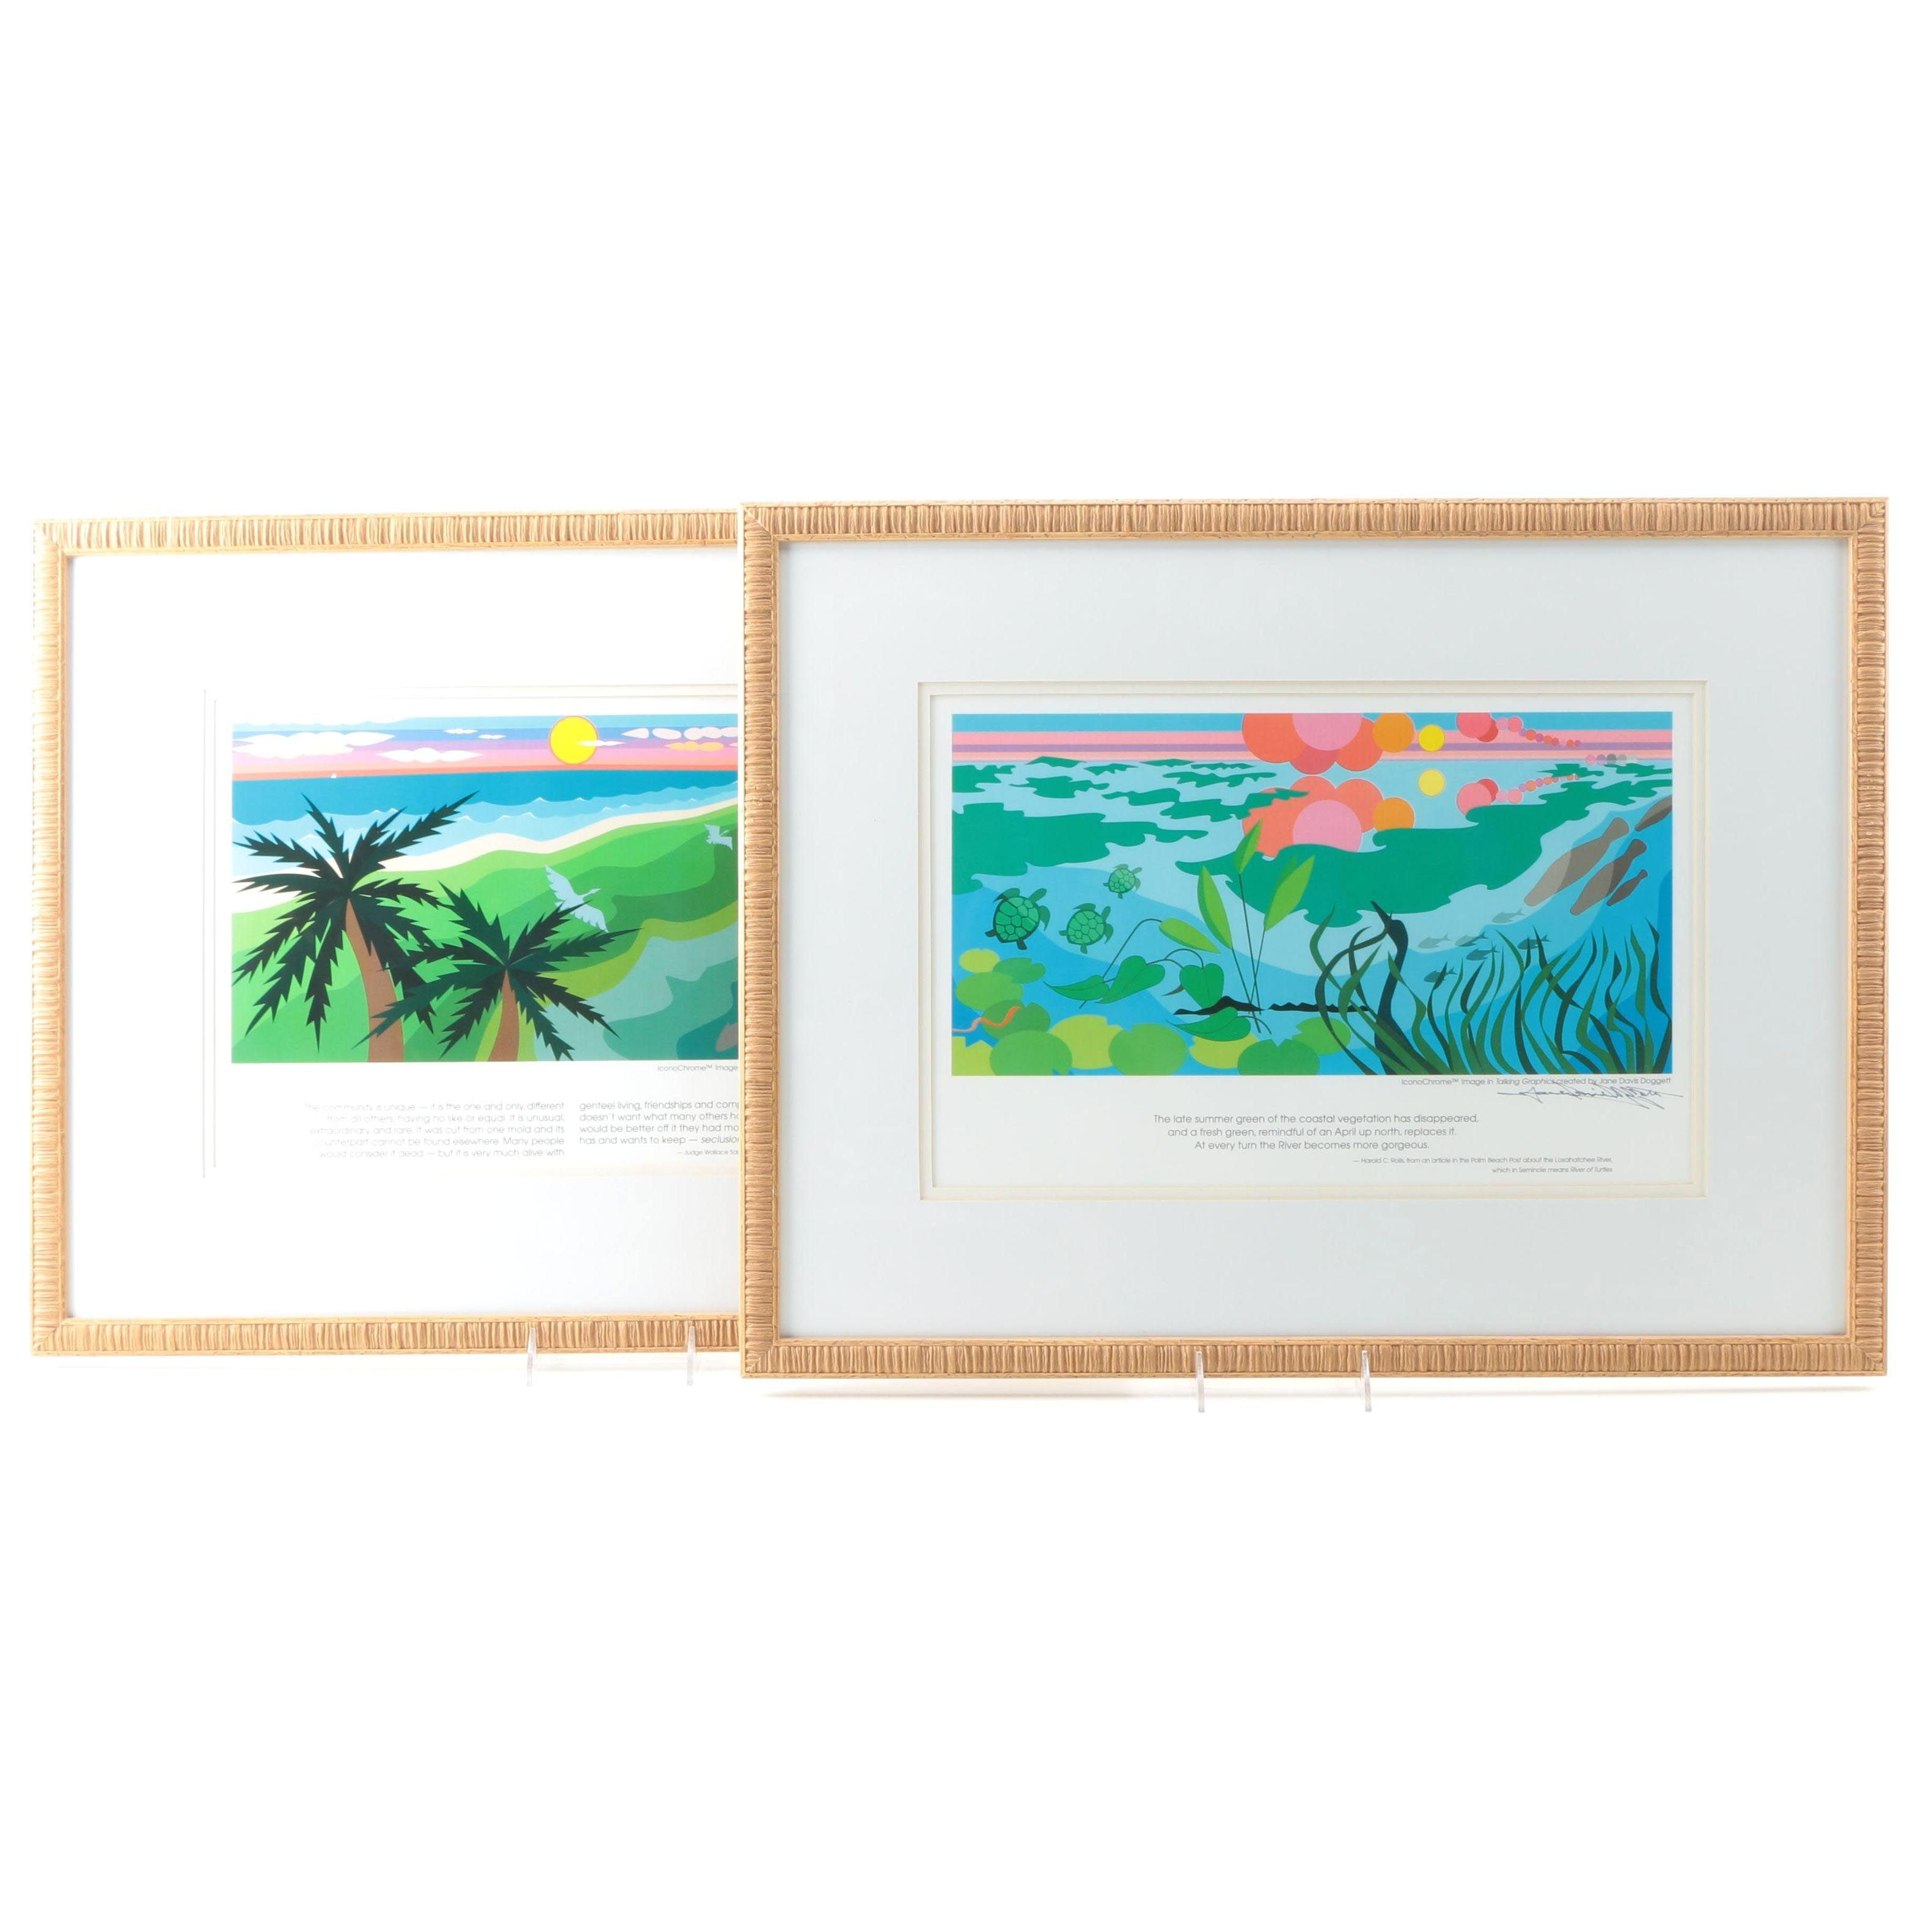 Offset Lithographs After Vector Images by Jane Davis Doggett